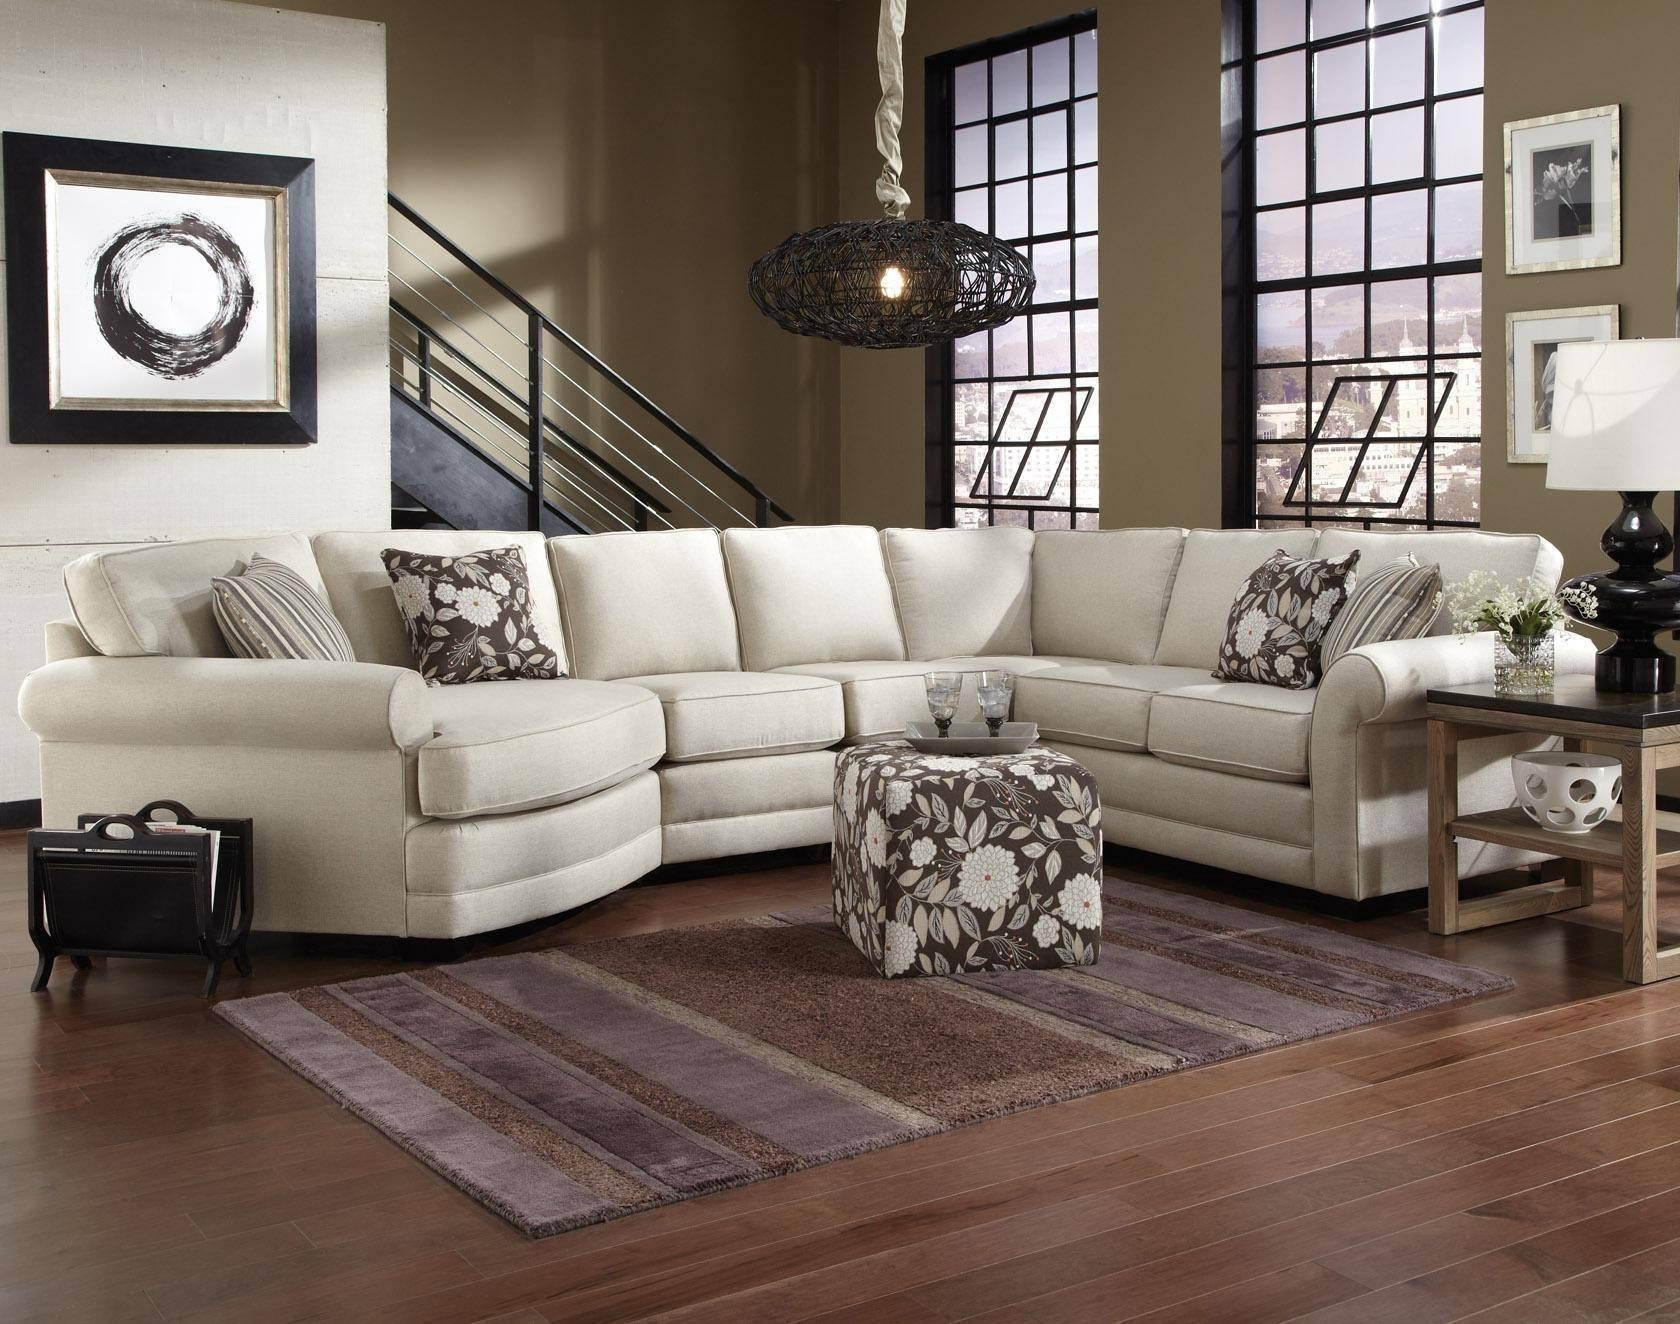 Sofa : 7 Seat Sectional Sofa Home Decor Interior Exterior inside 7 Seat Sectional Sofa (Image 16 of 30)